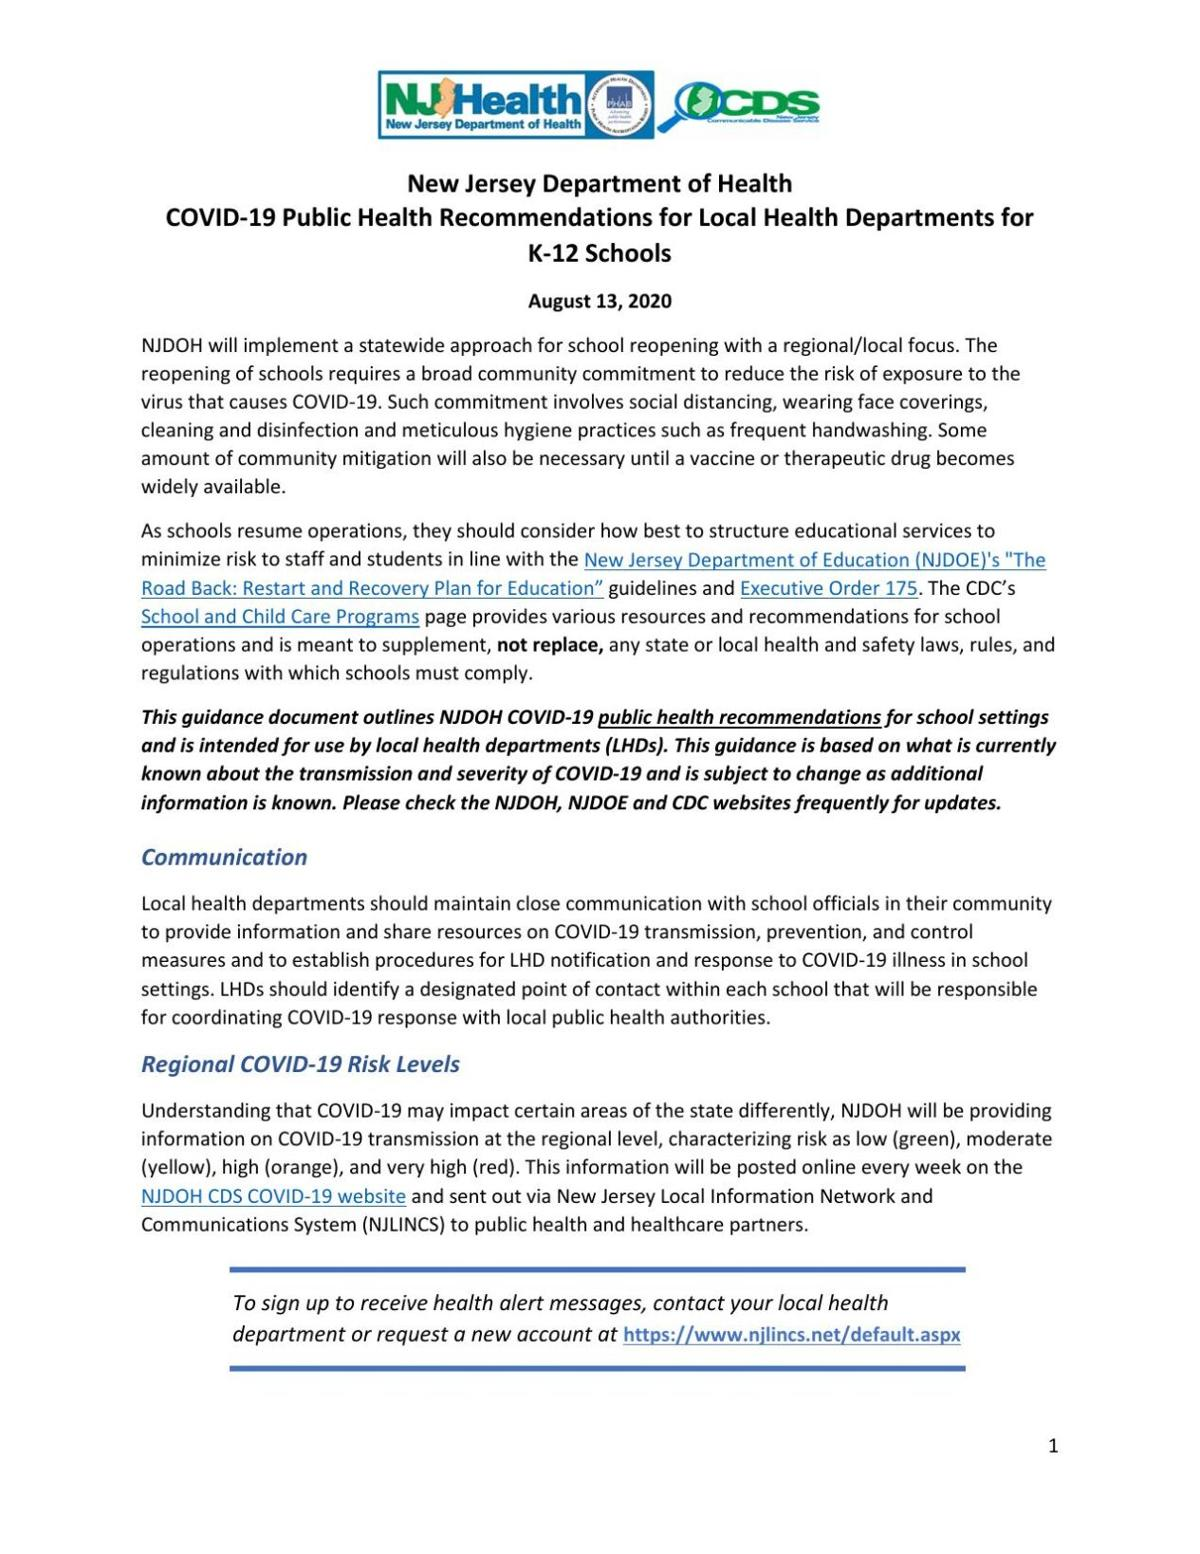 NJ Department of Health recommendations